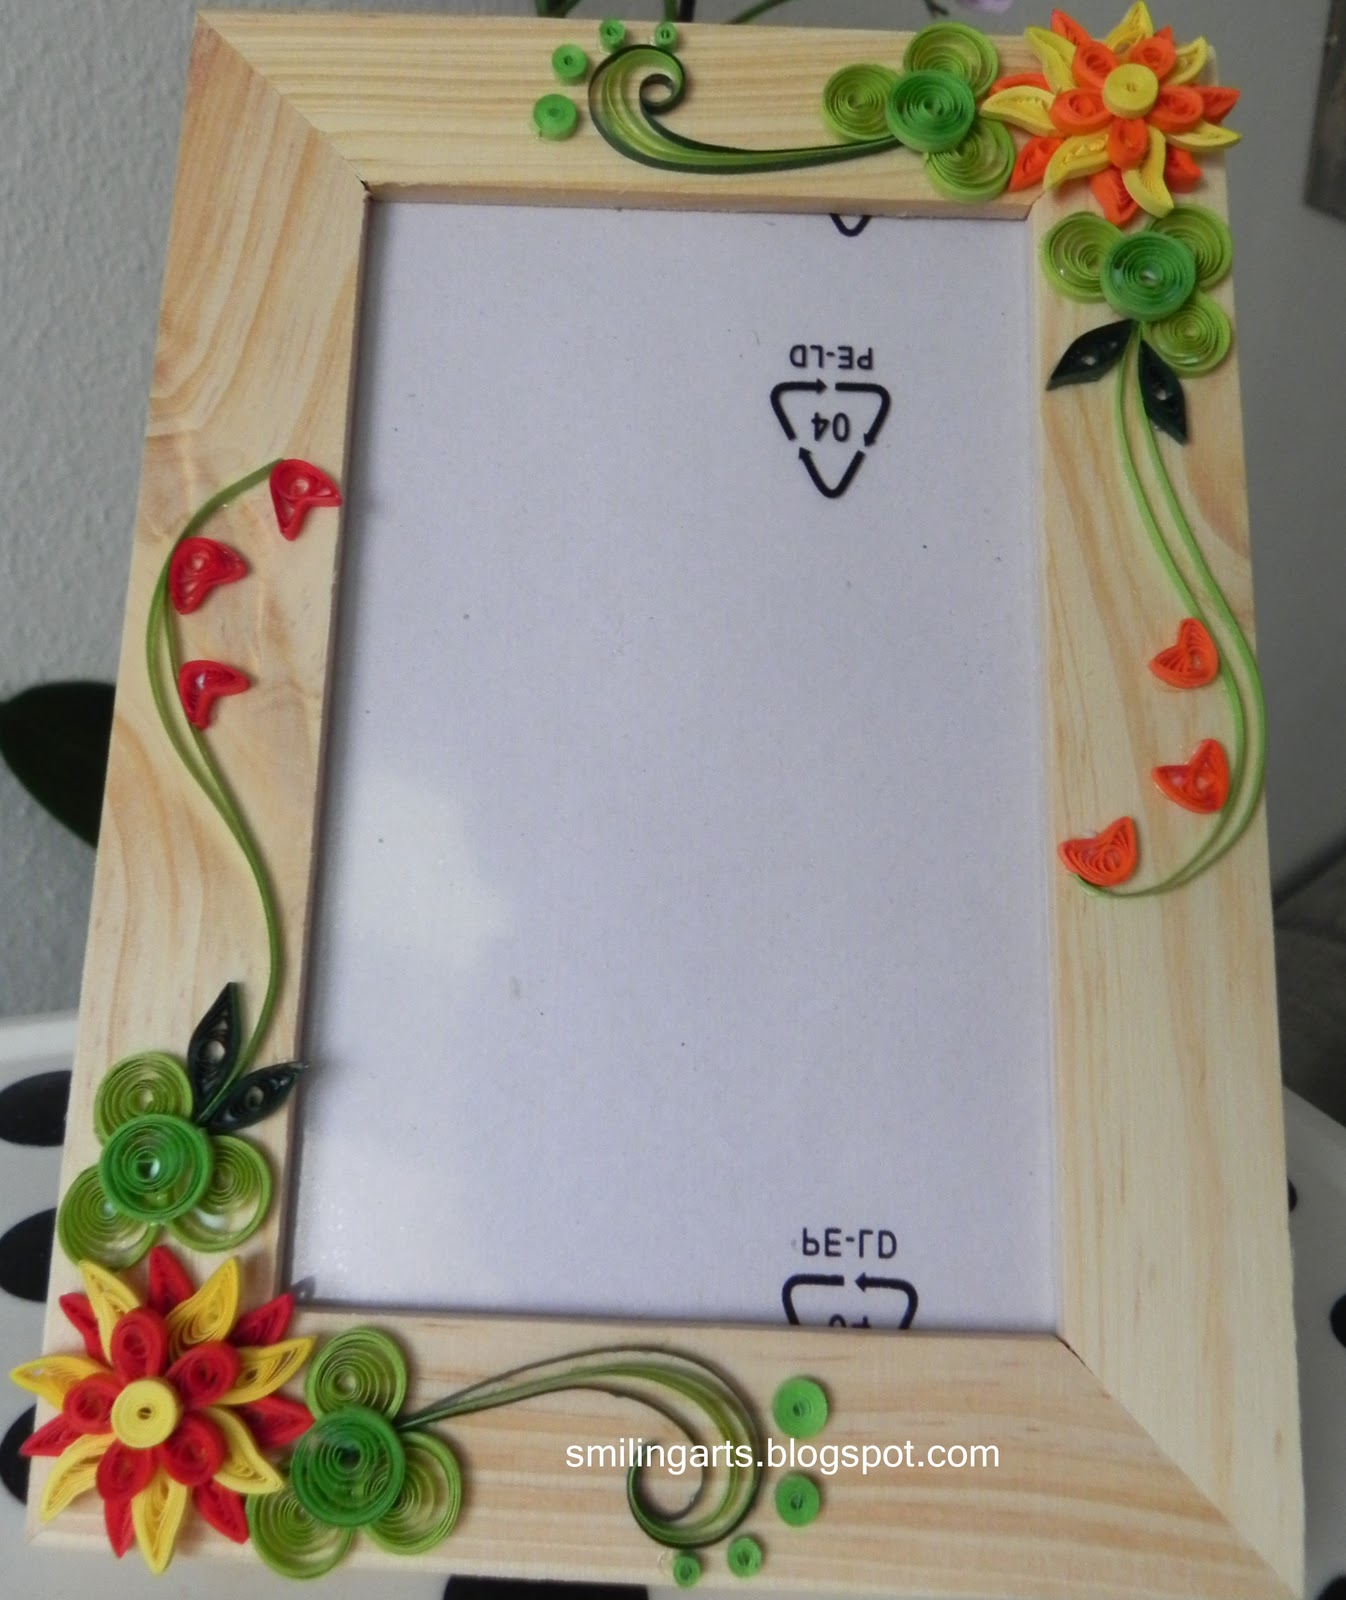 Quilling Home Decor Smilingarts Frame With Quilled Design